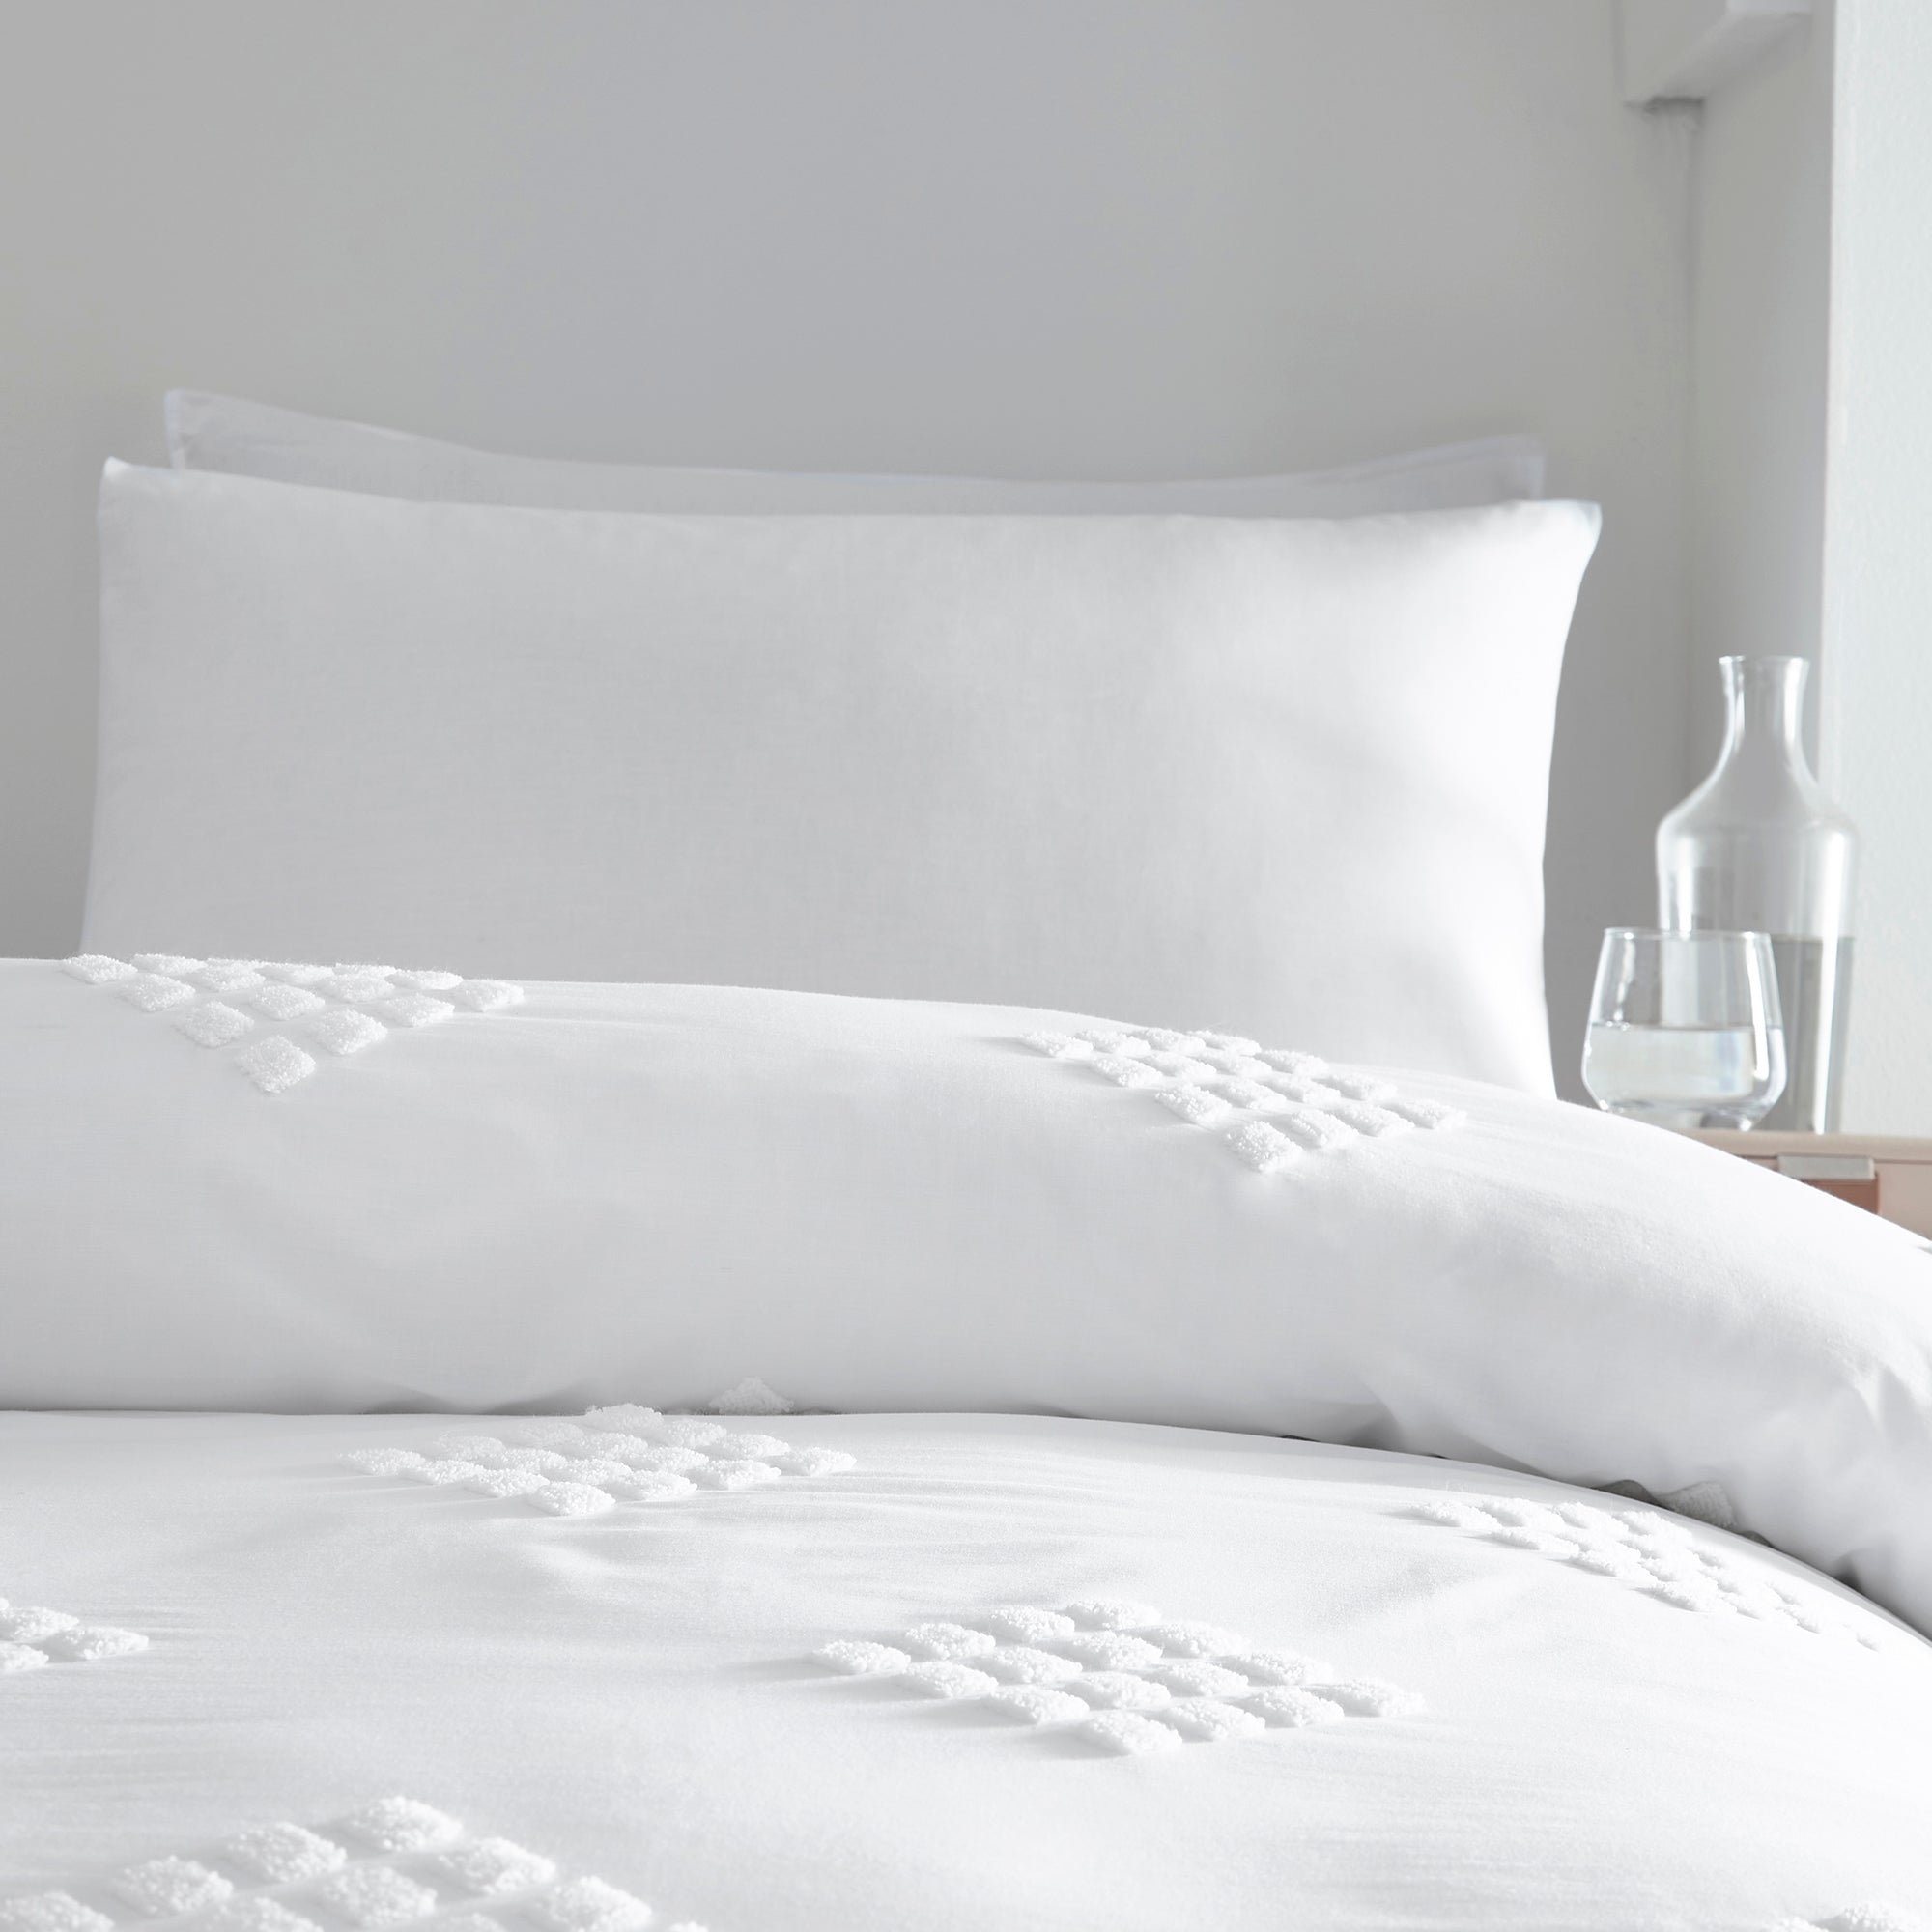 Diamond Tuft - 100% Cotton Duvet Cover Set in White - by Appletree Boutique